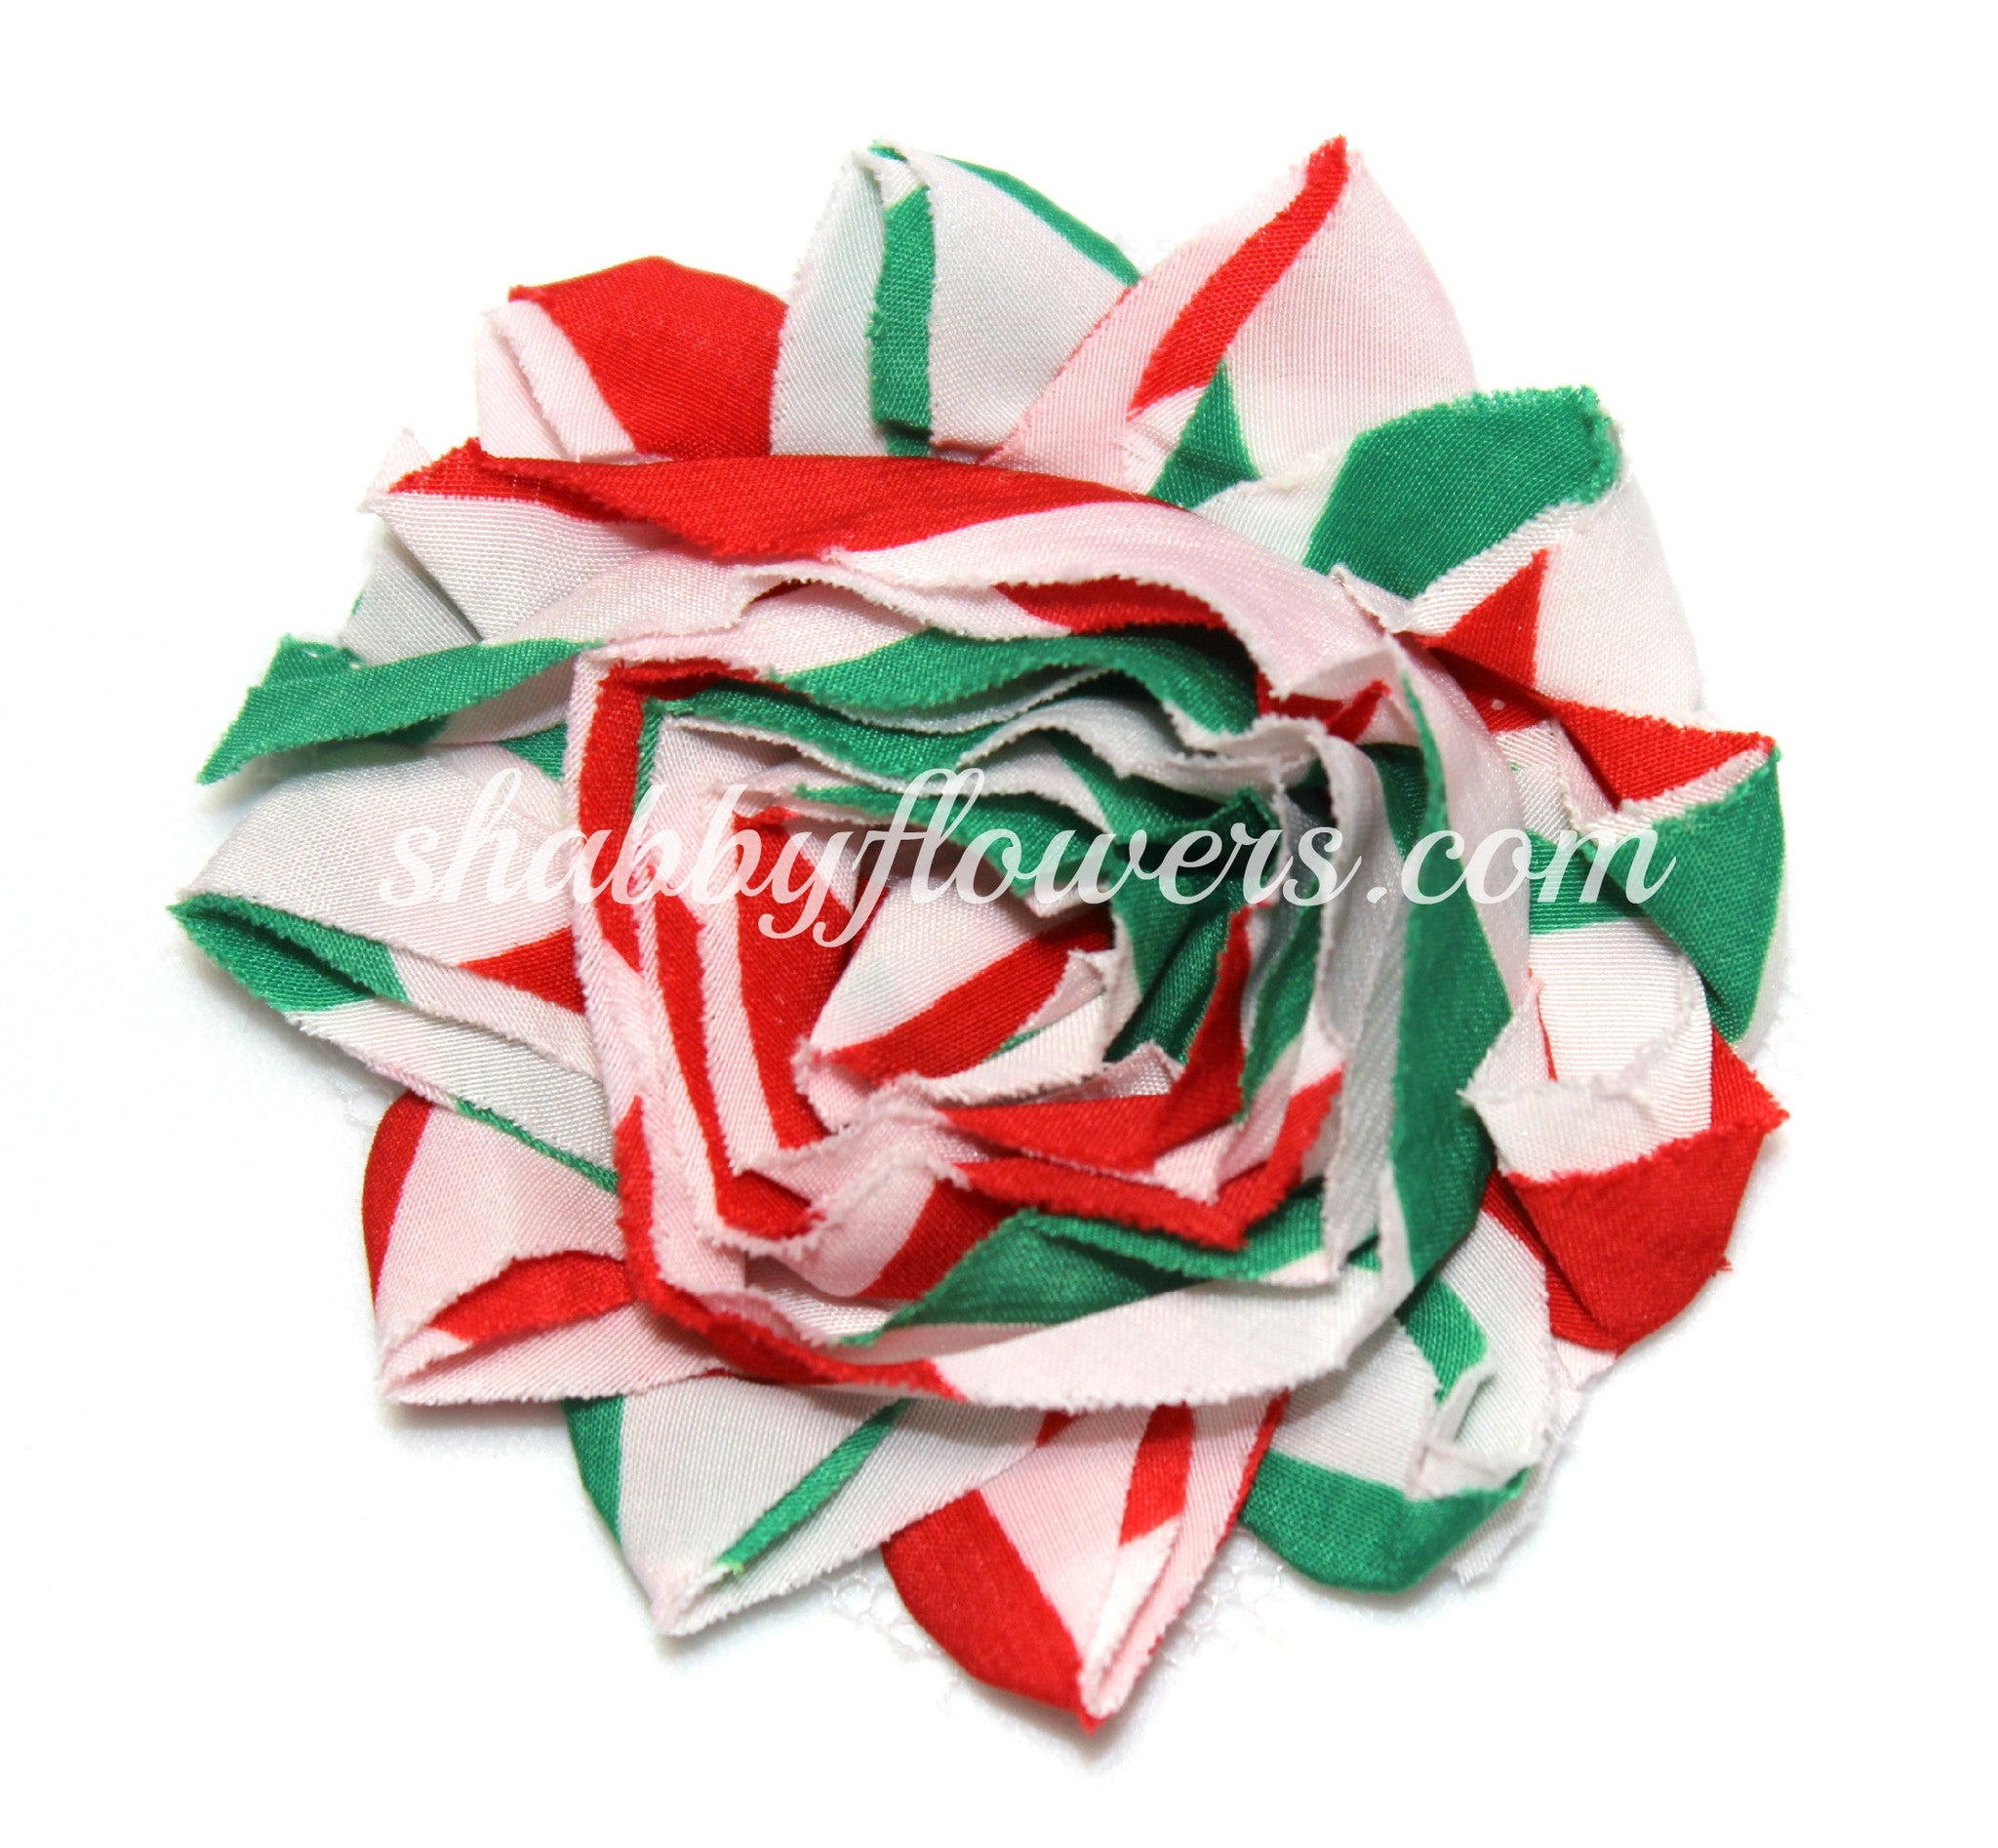 Shabby Chiffon Flower - Christmas Red/White/Green Chevron - shabbyflowers.com